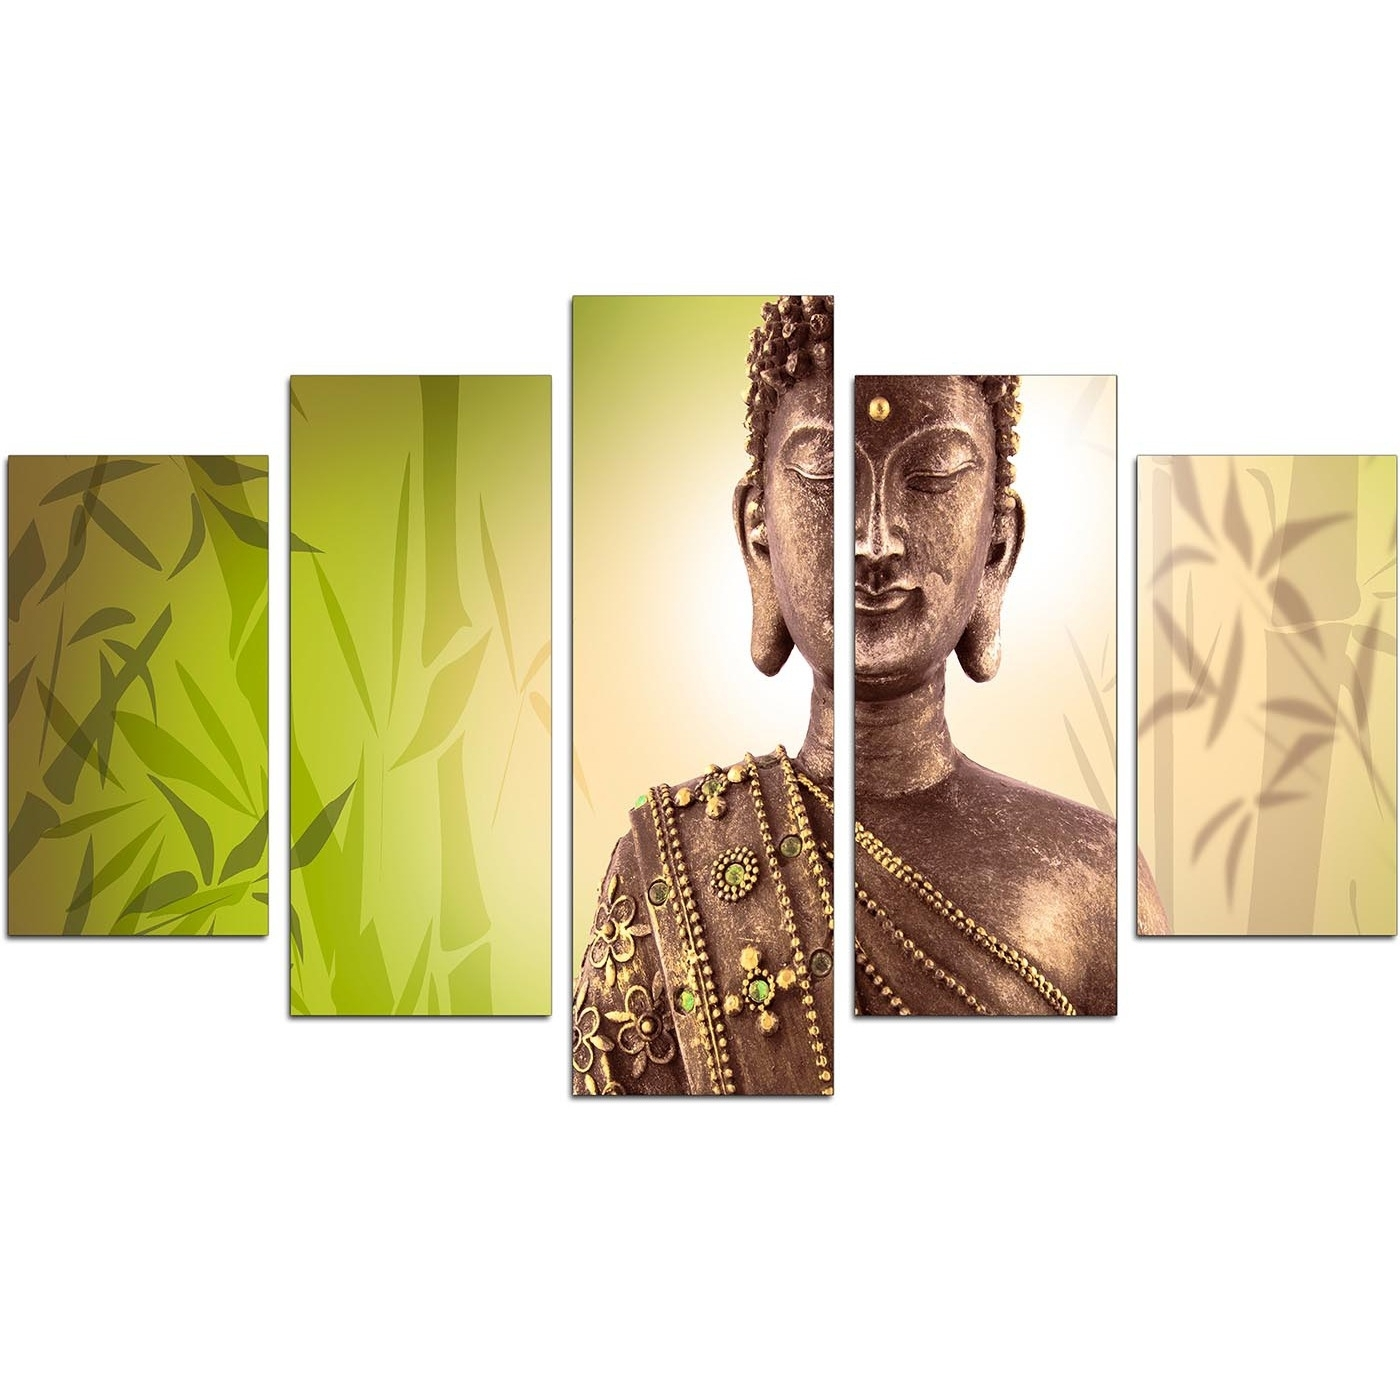 Best And Newest Large Buddha Wall Art In Extra Large Buddha Canvas Wall Art 5 Piece In Green (View 2 of 15)